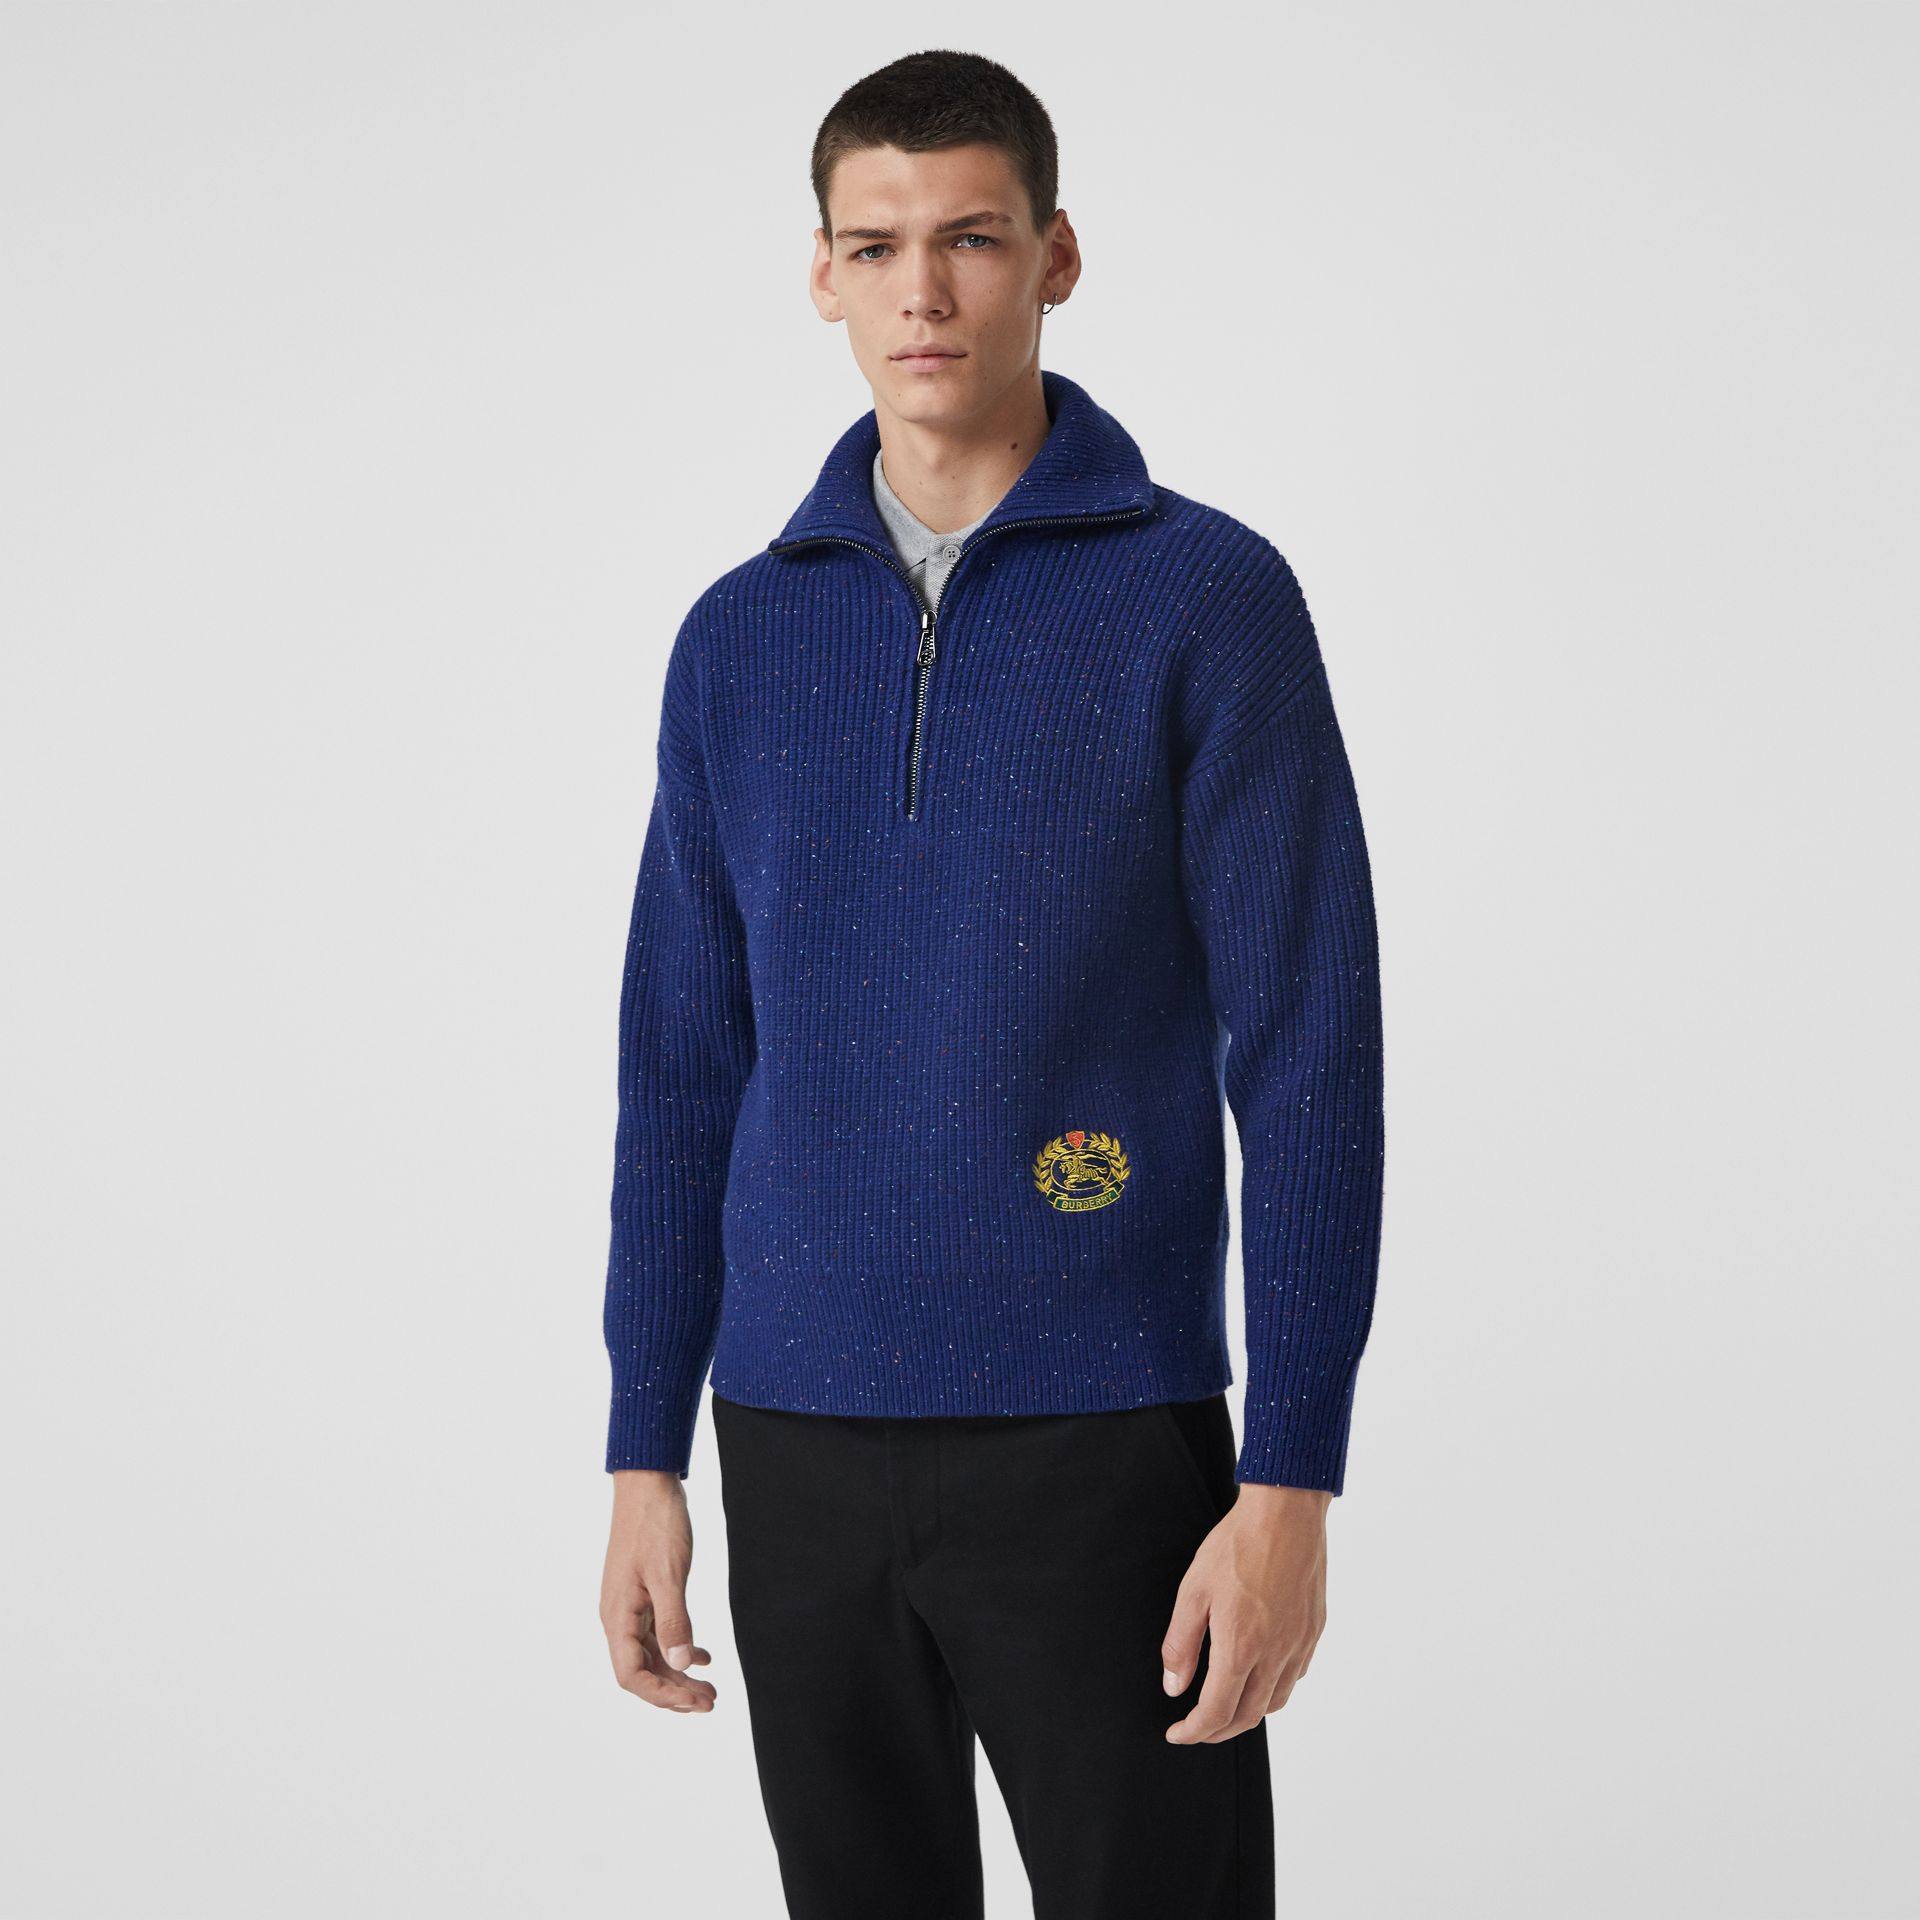 Rib Knit Wool Cashmere Blend Half-zip Sweater in Navy - Men | Burberry - gallery image 5